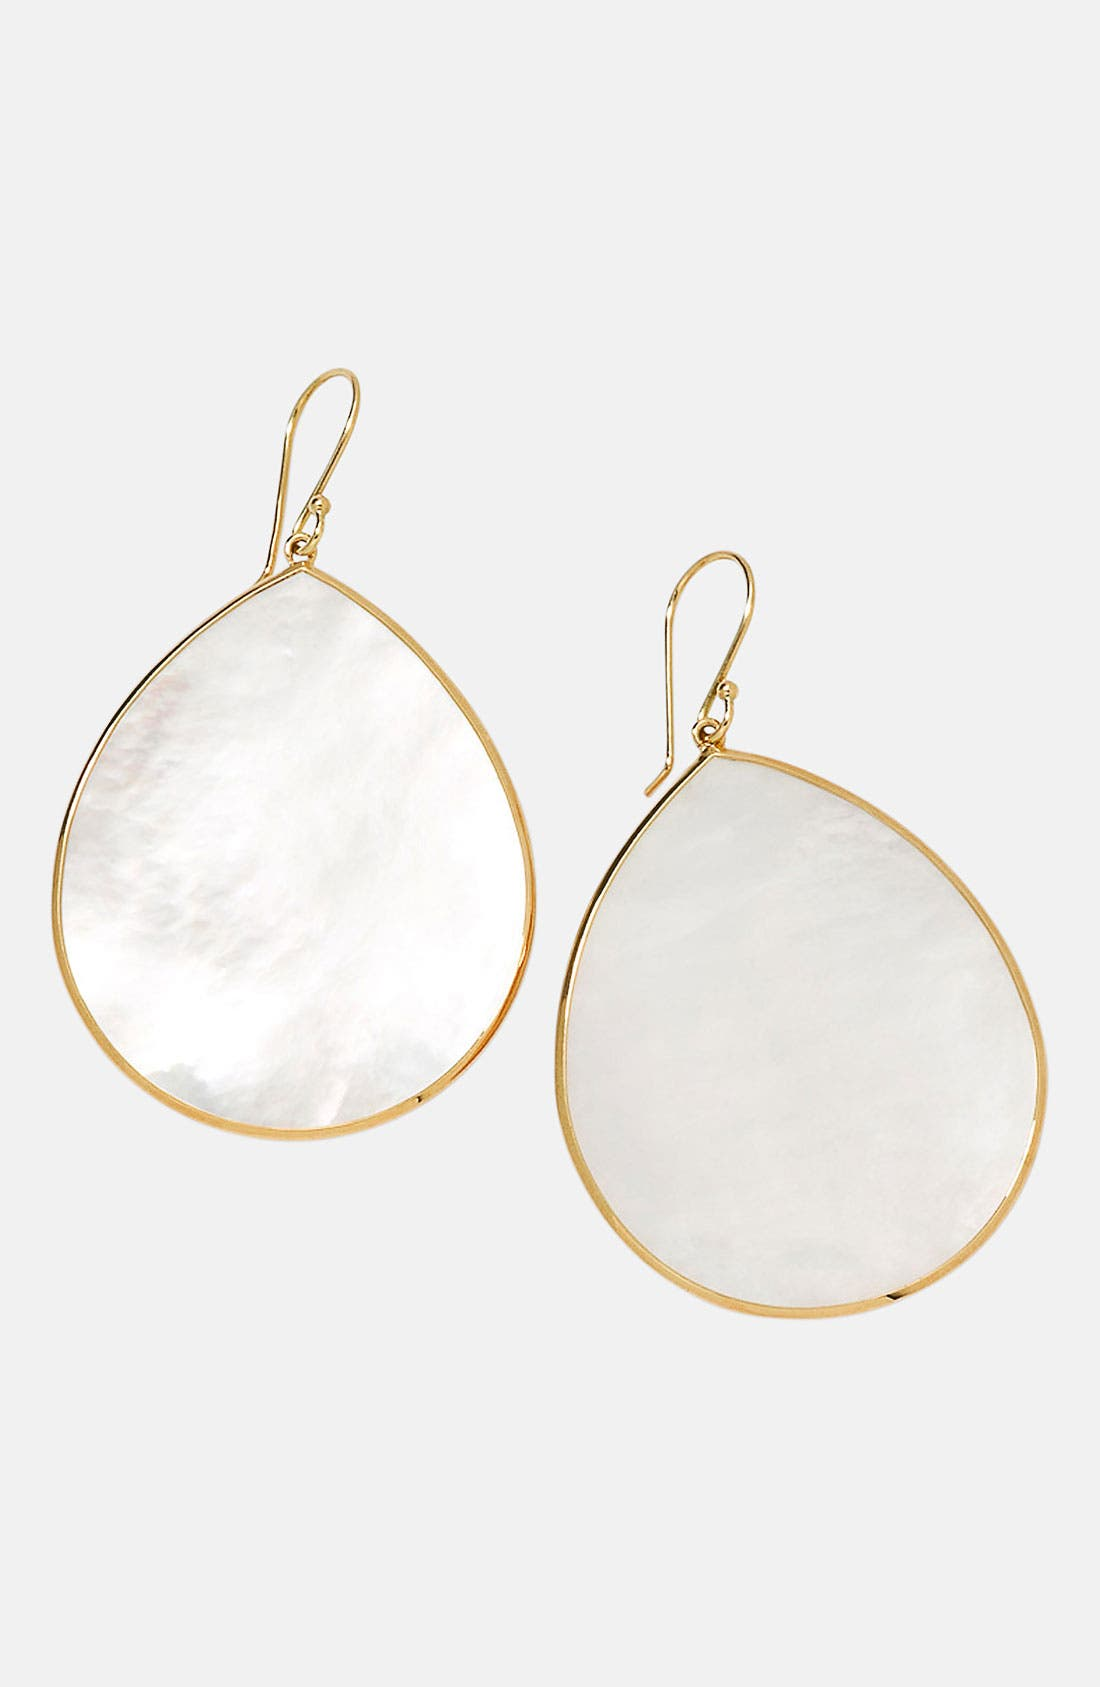 Main Image - Ippolita 'Rock Candy - Jumbo Teardrop' 18k Gold Earrings